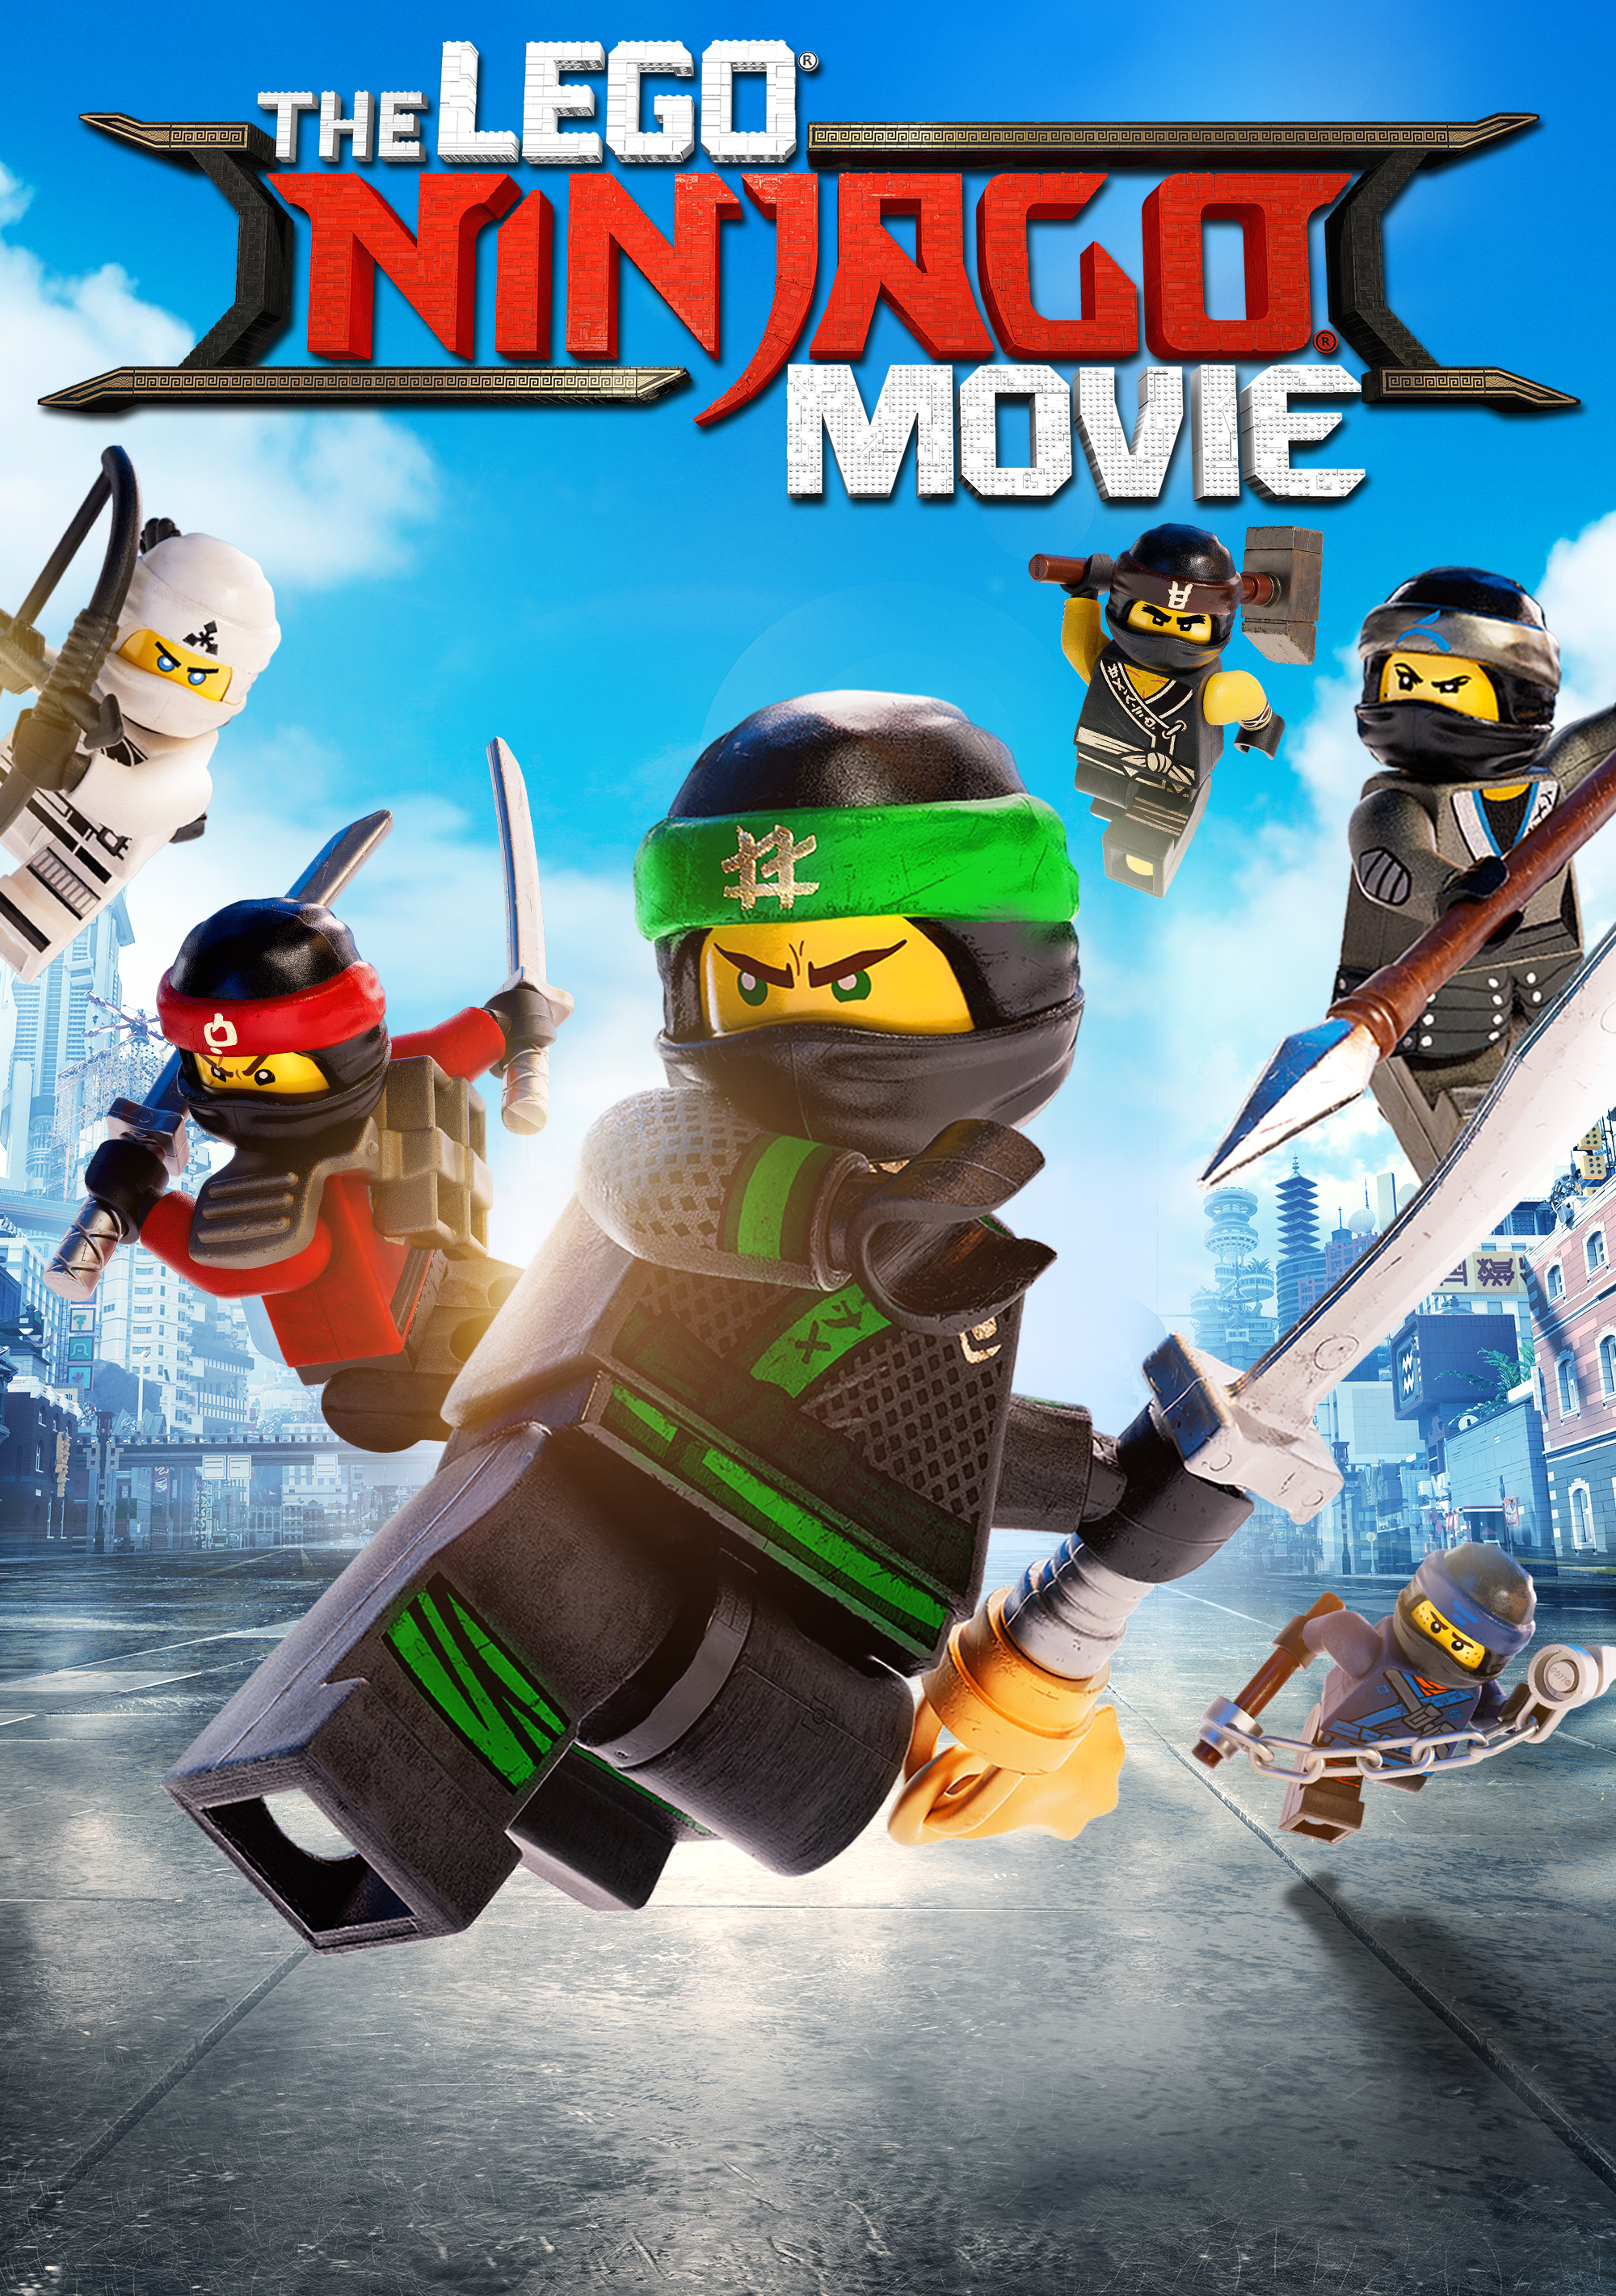 The Lego Ninjago Movie (2017) - IMDb